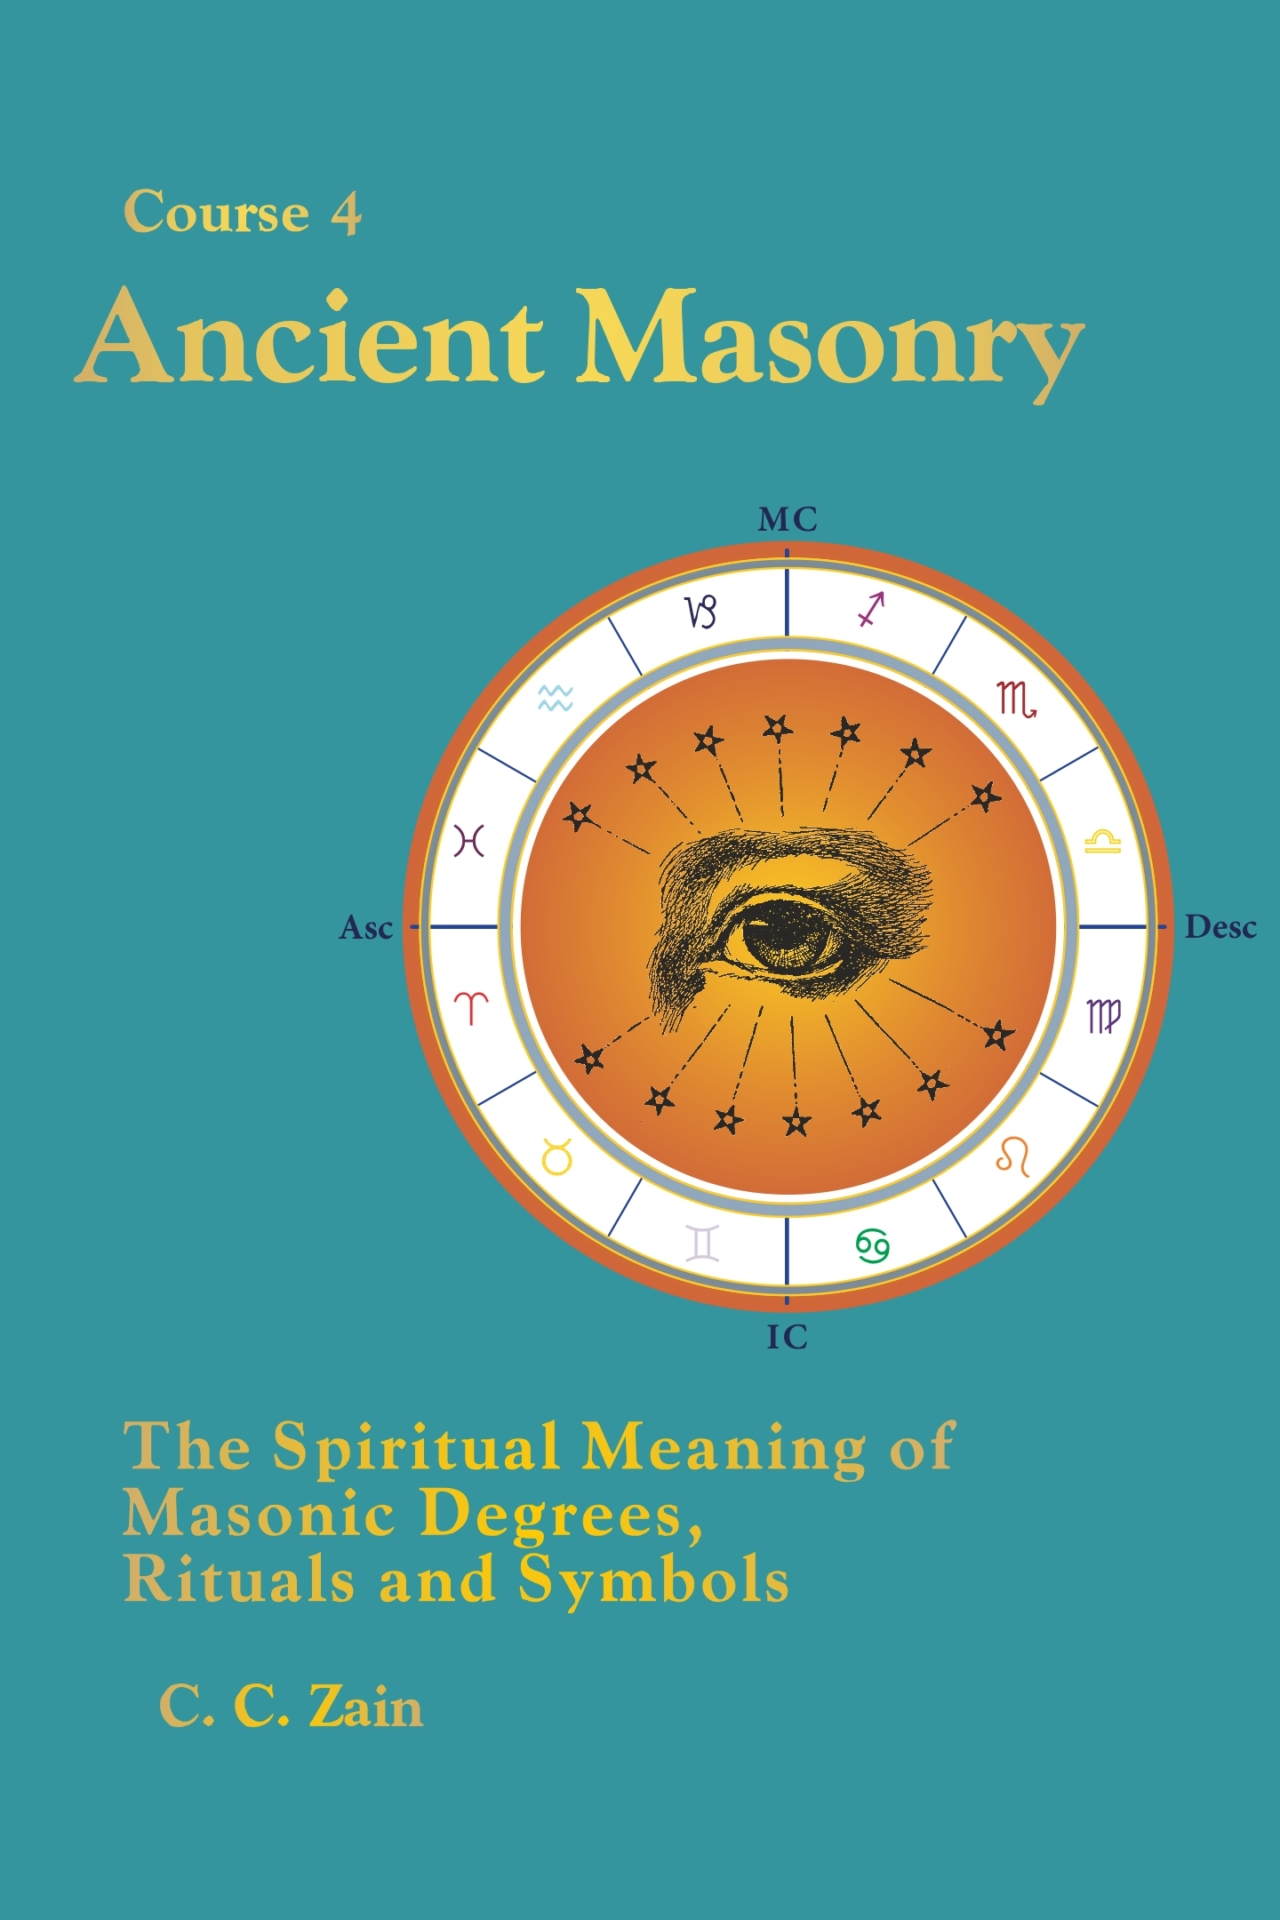 https://study.academyofhermeticarts.org/wp-content/uploads/2020/04/04_Ancient_Masonry_eBook_Cover-1280x1920.jpg